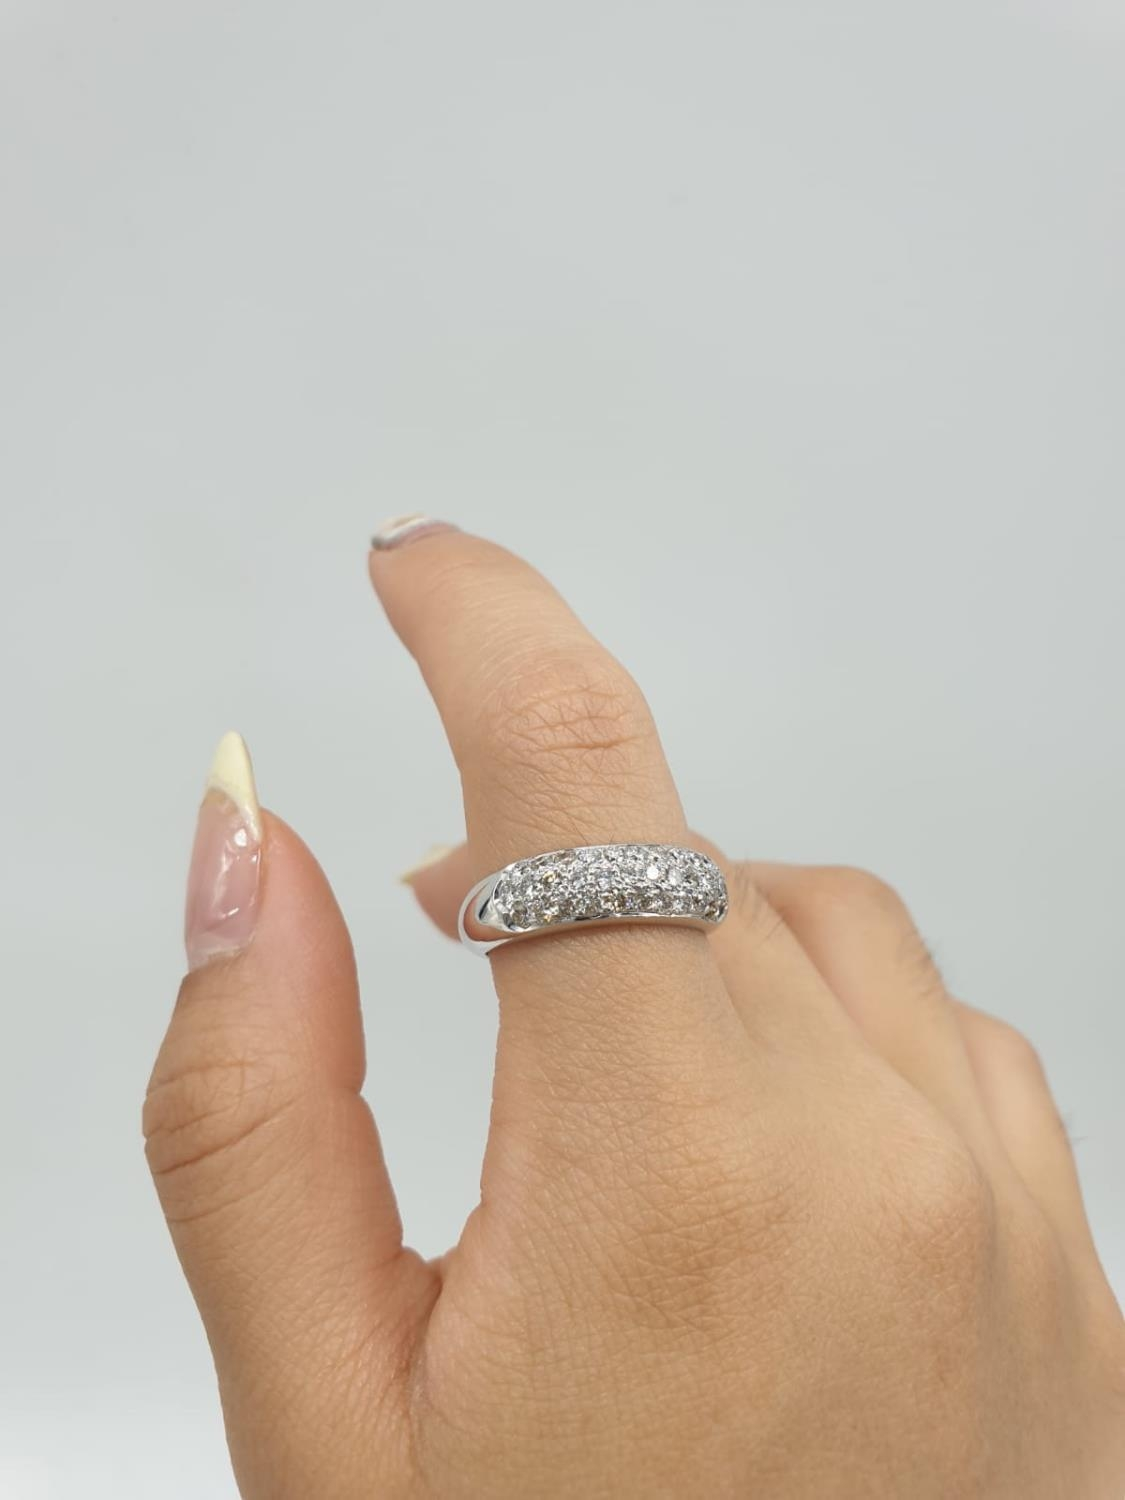 A diamond encrusted 18ct white gold ring. 6.4g and size N. - Image 7 of 7